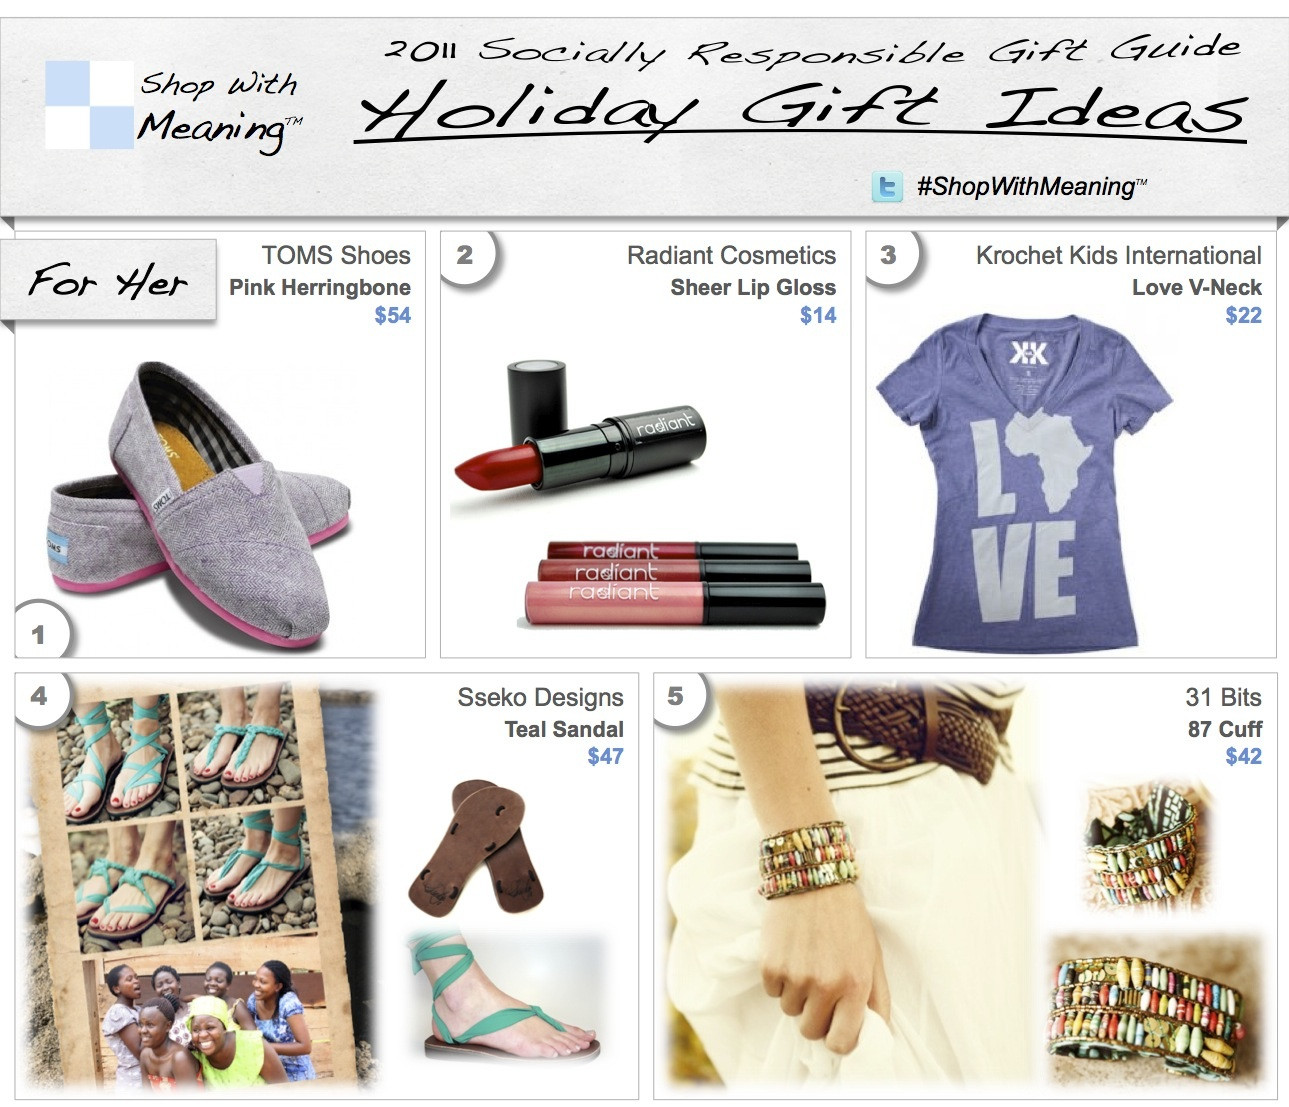 Holiday Gift Ideas For Woman  Christmas Gift Ideas Socially Responsible Christmas Gifts